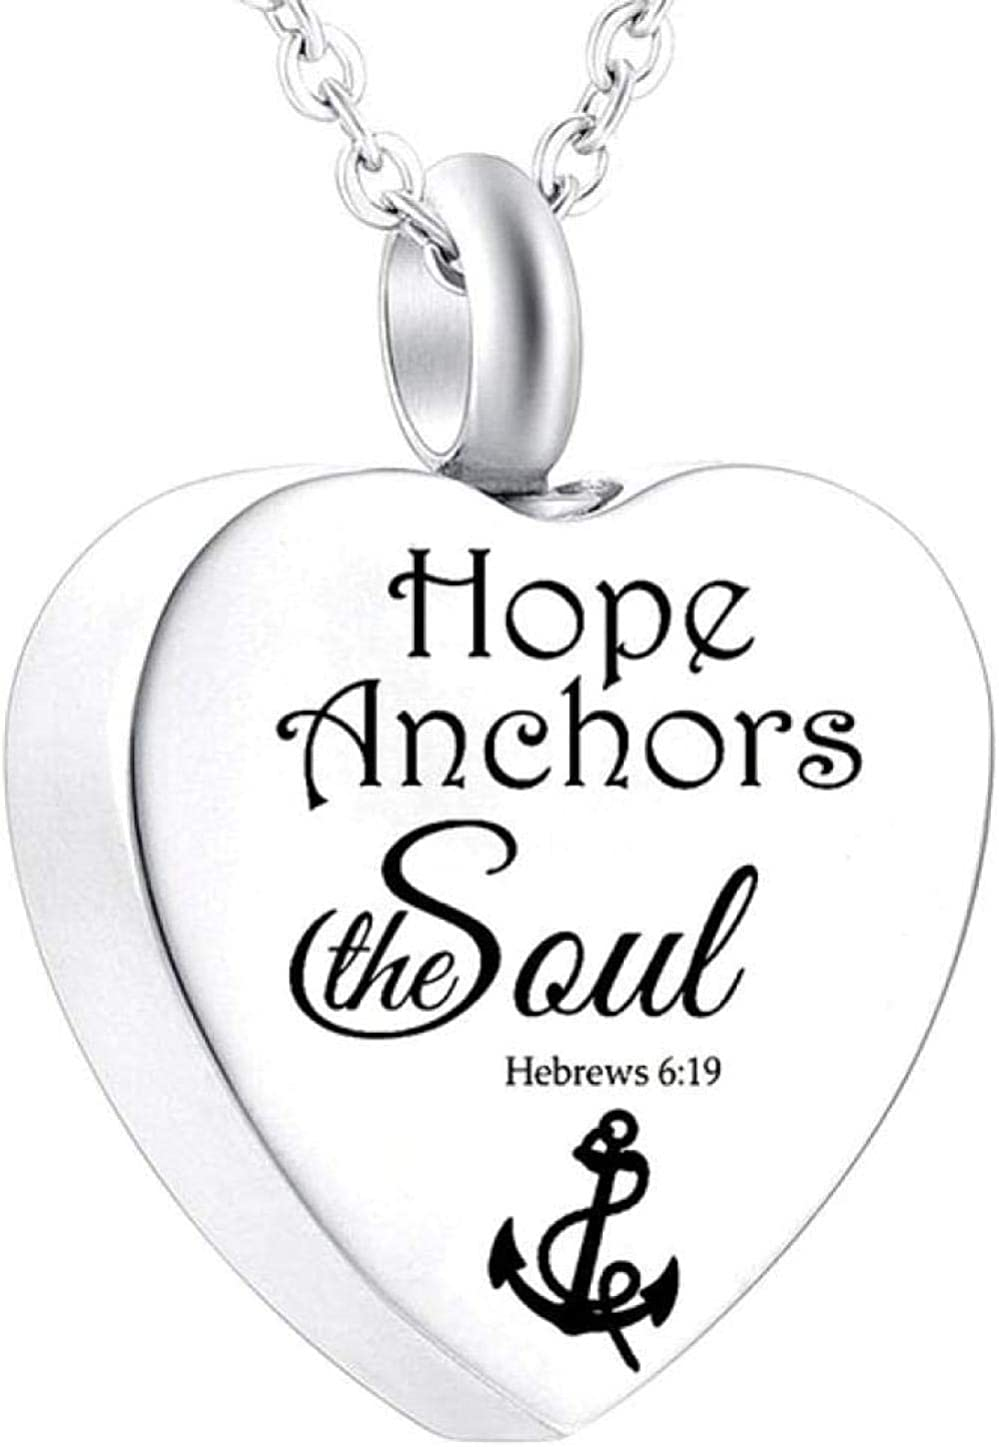 Ashes Memorial Heart Cremation Urn Necklace for Ashes Urn Jewelry Memorial Pendant with Fill Kit